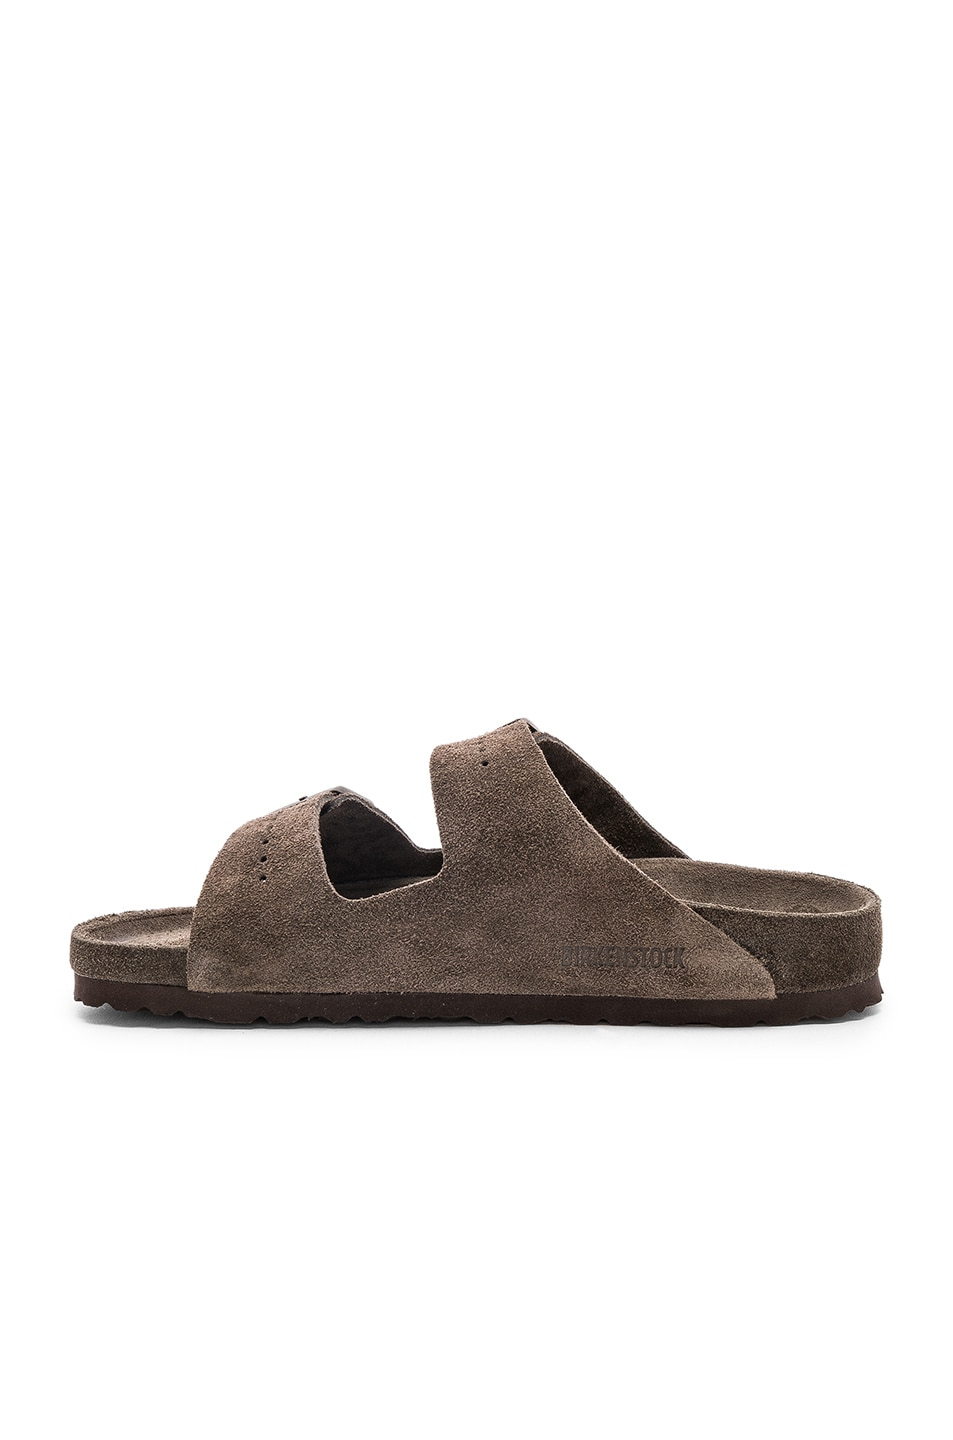 Image 5 of Rick Owens x Birkenstock Suede Arizona in Dust